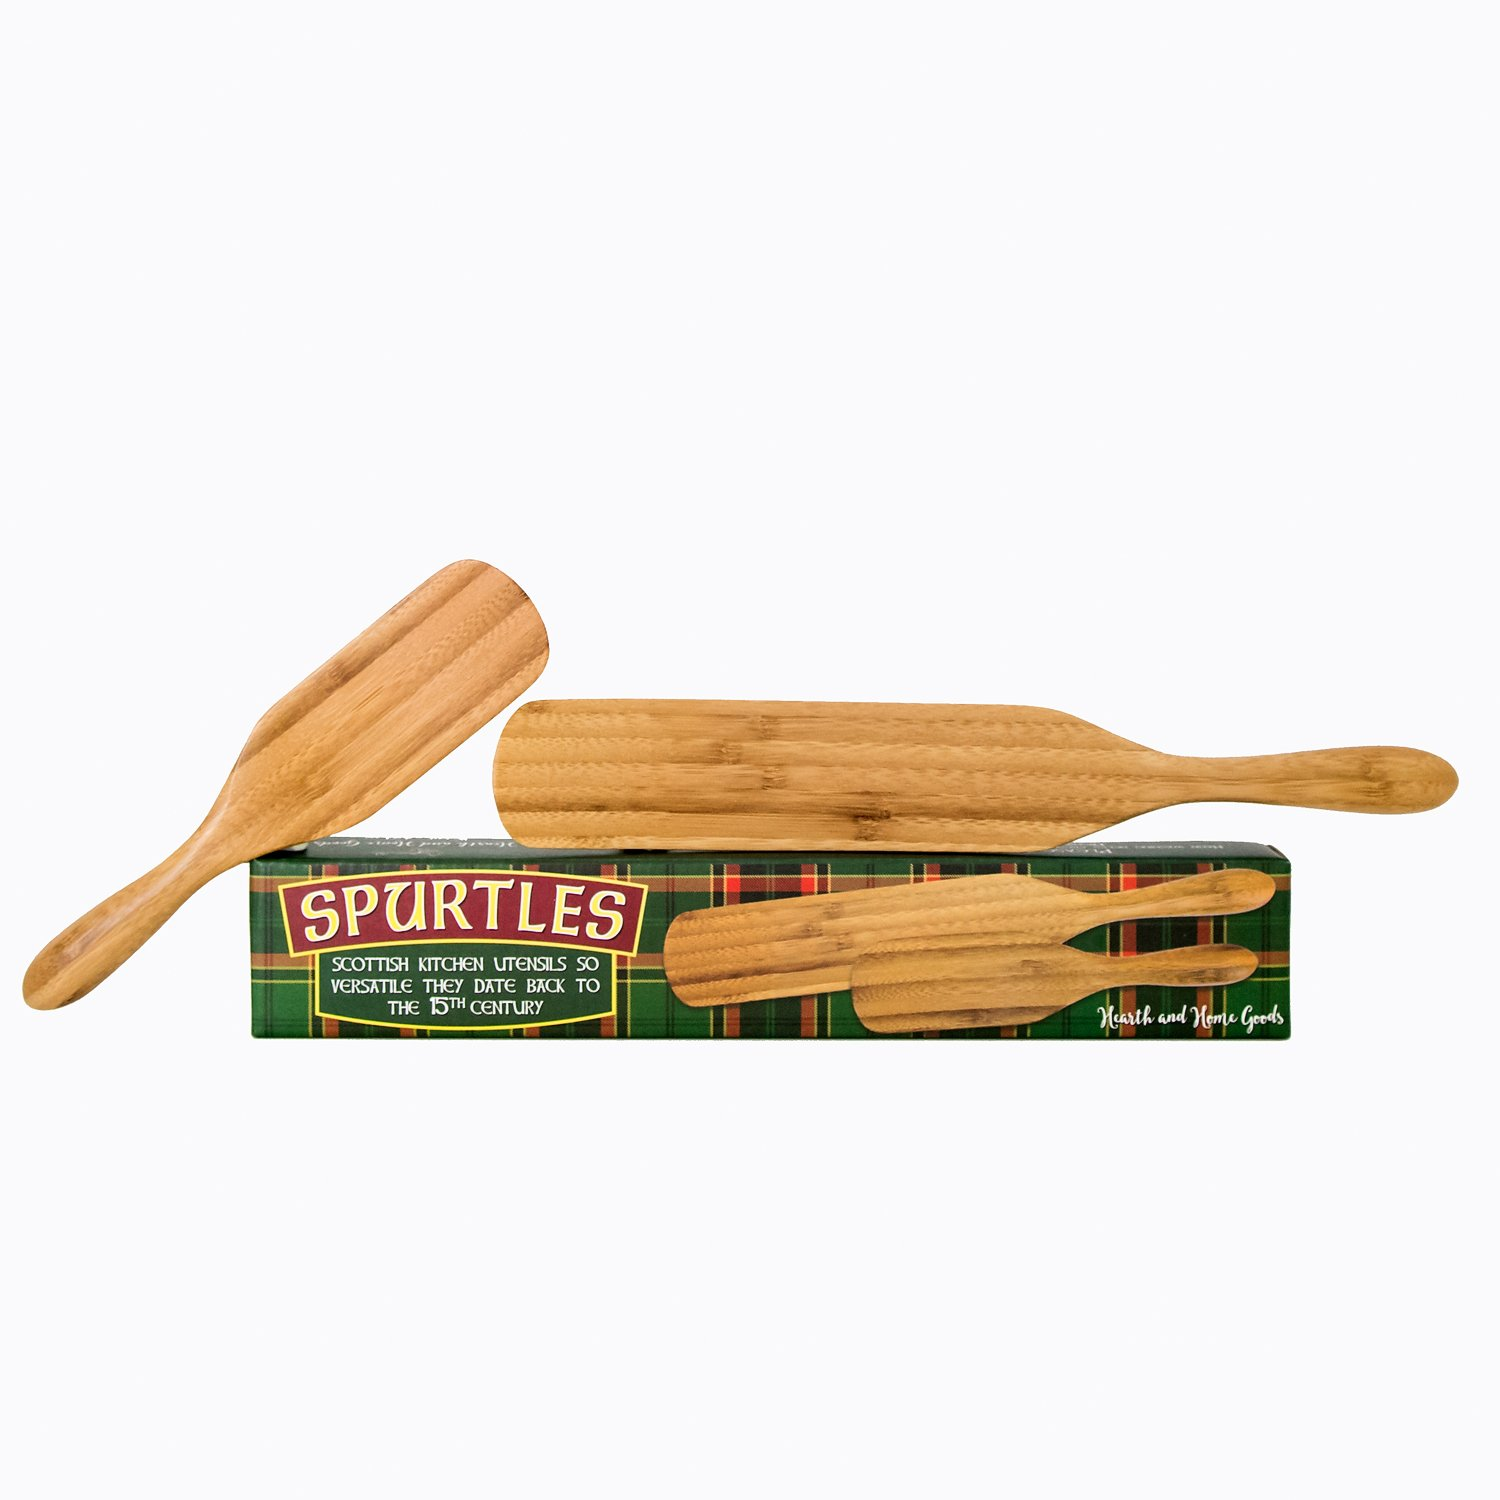 Spurtle Cooking Utensils   2 Piece Kitchen Tools Set   Heat Resistant, Wooden Bamboo Spatula/Stirring Spoon   Unique, Multifunction Utensil   Safe for Cookware by Hearth and Home Goods